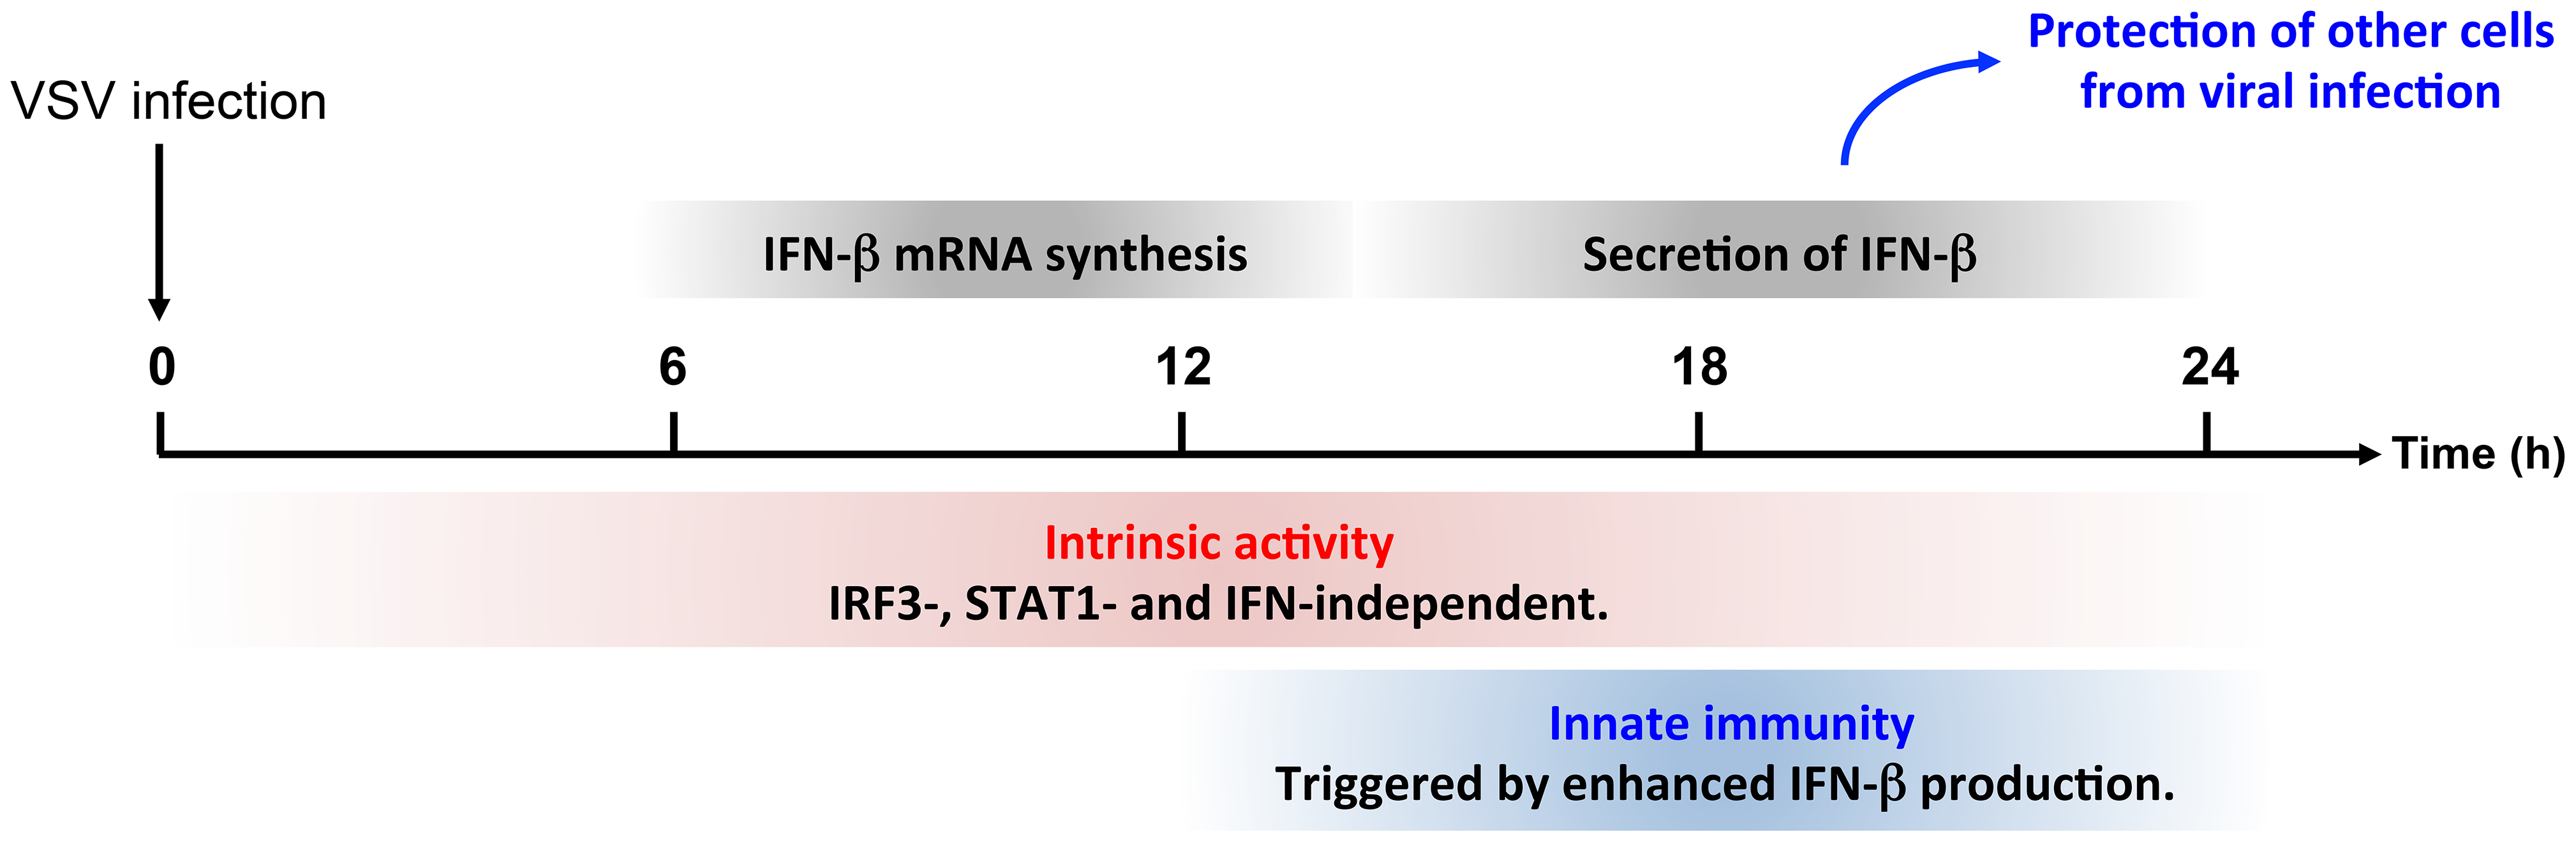 Intrinsic and innate immune properties of PMLIV during viral infection.